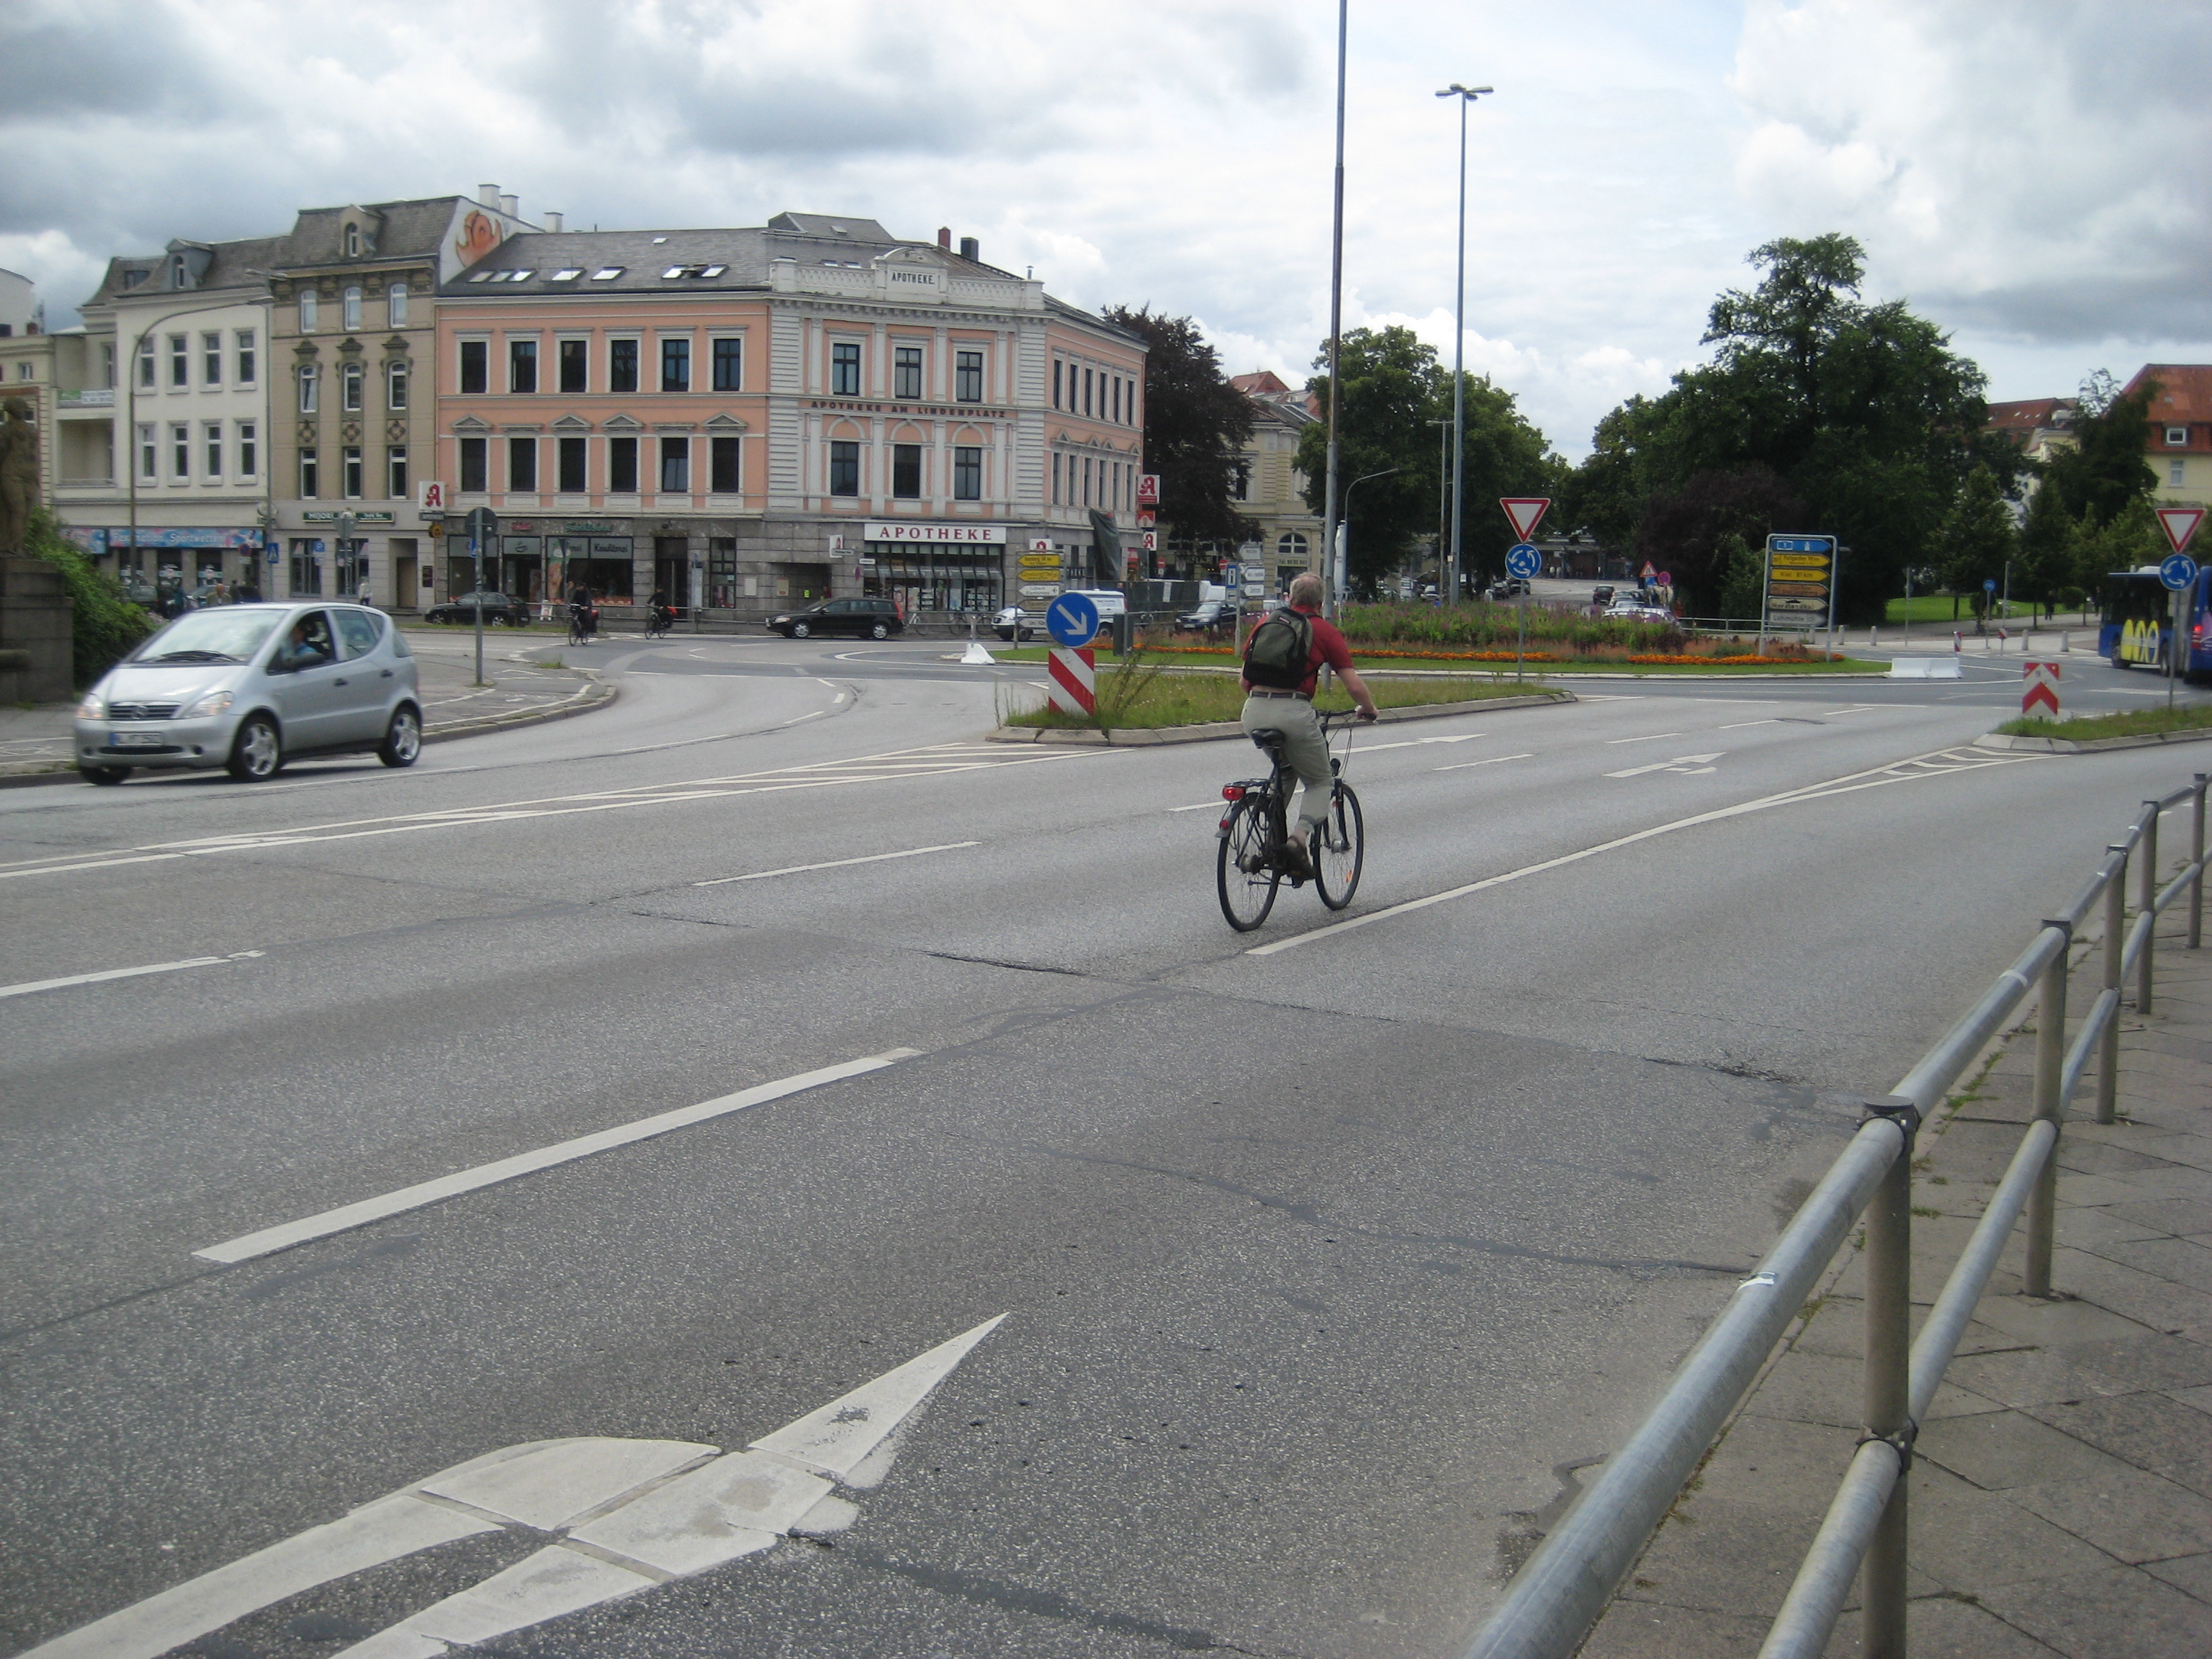 A Busy Urban Junction in Germany